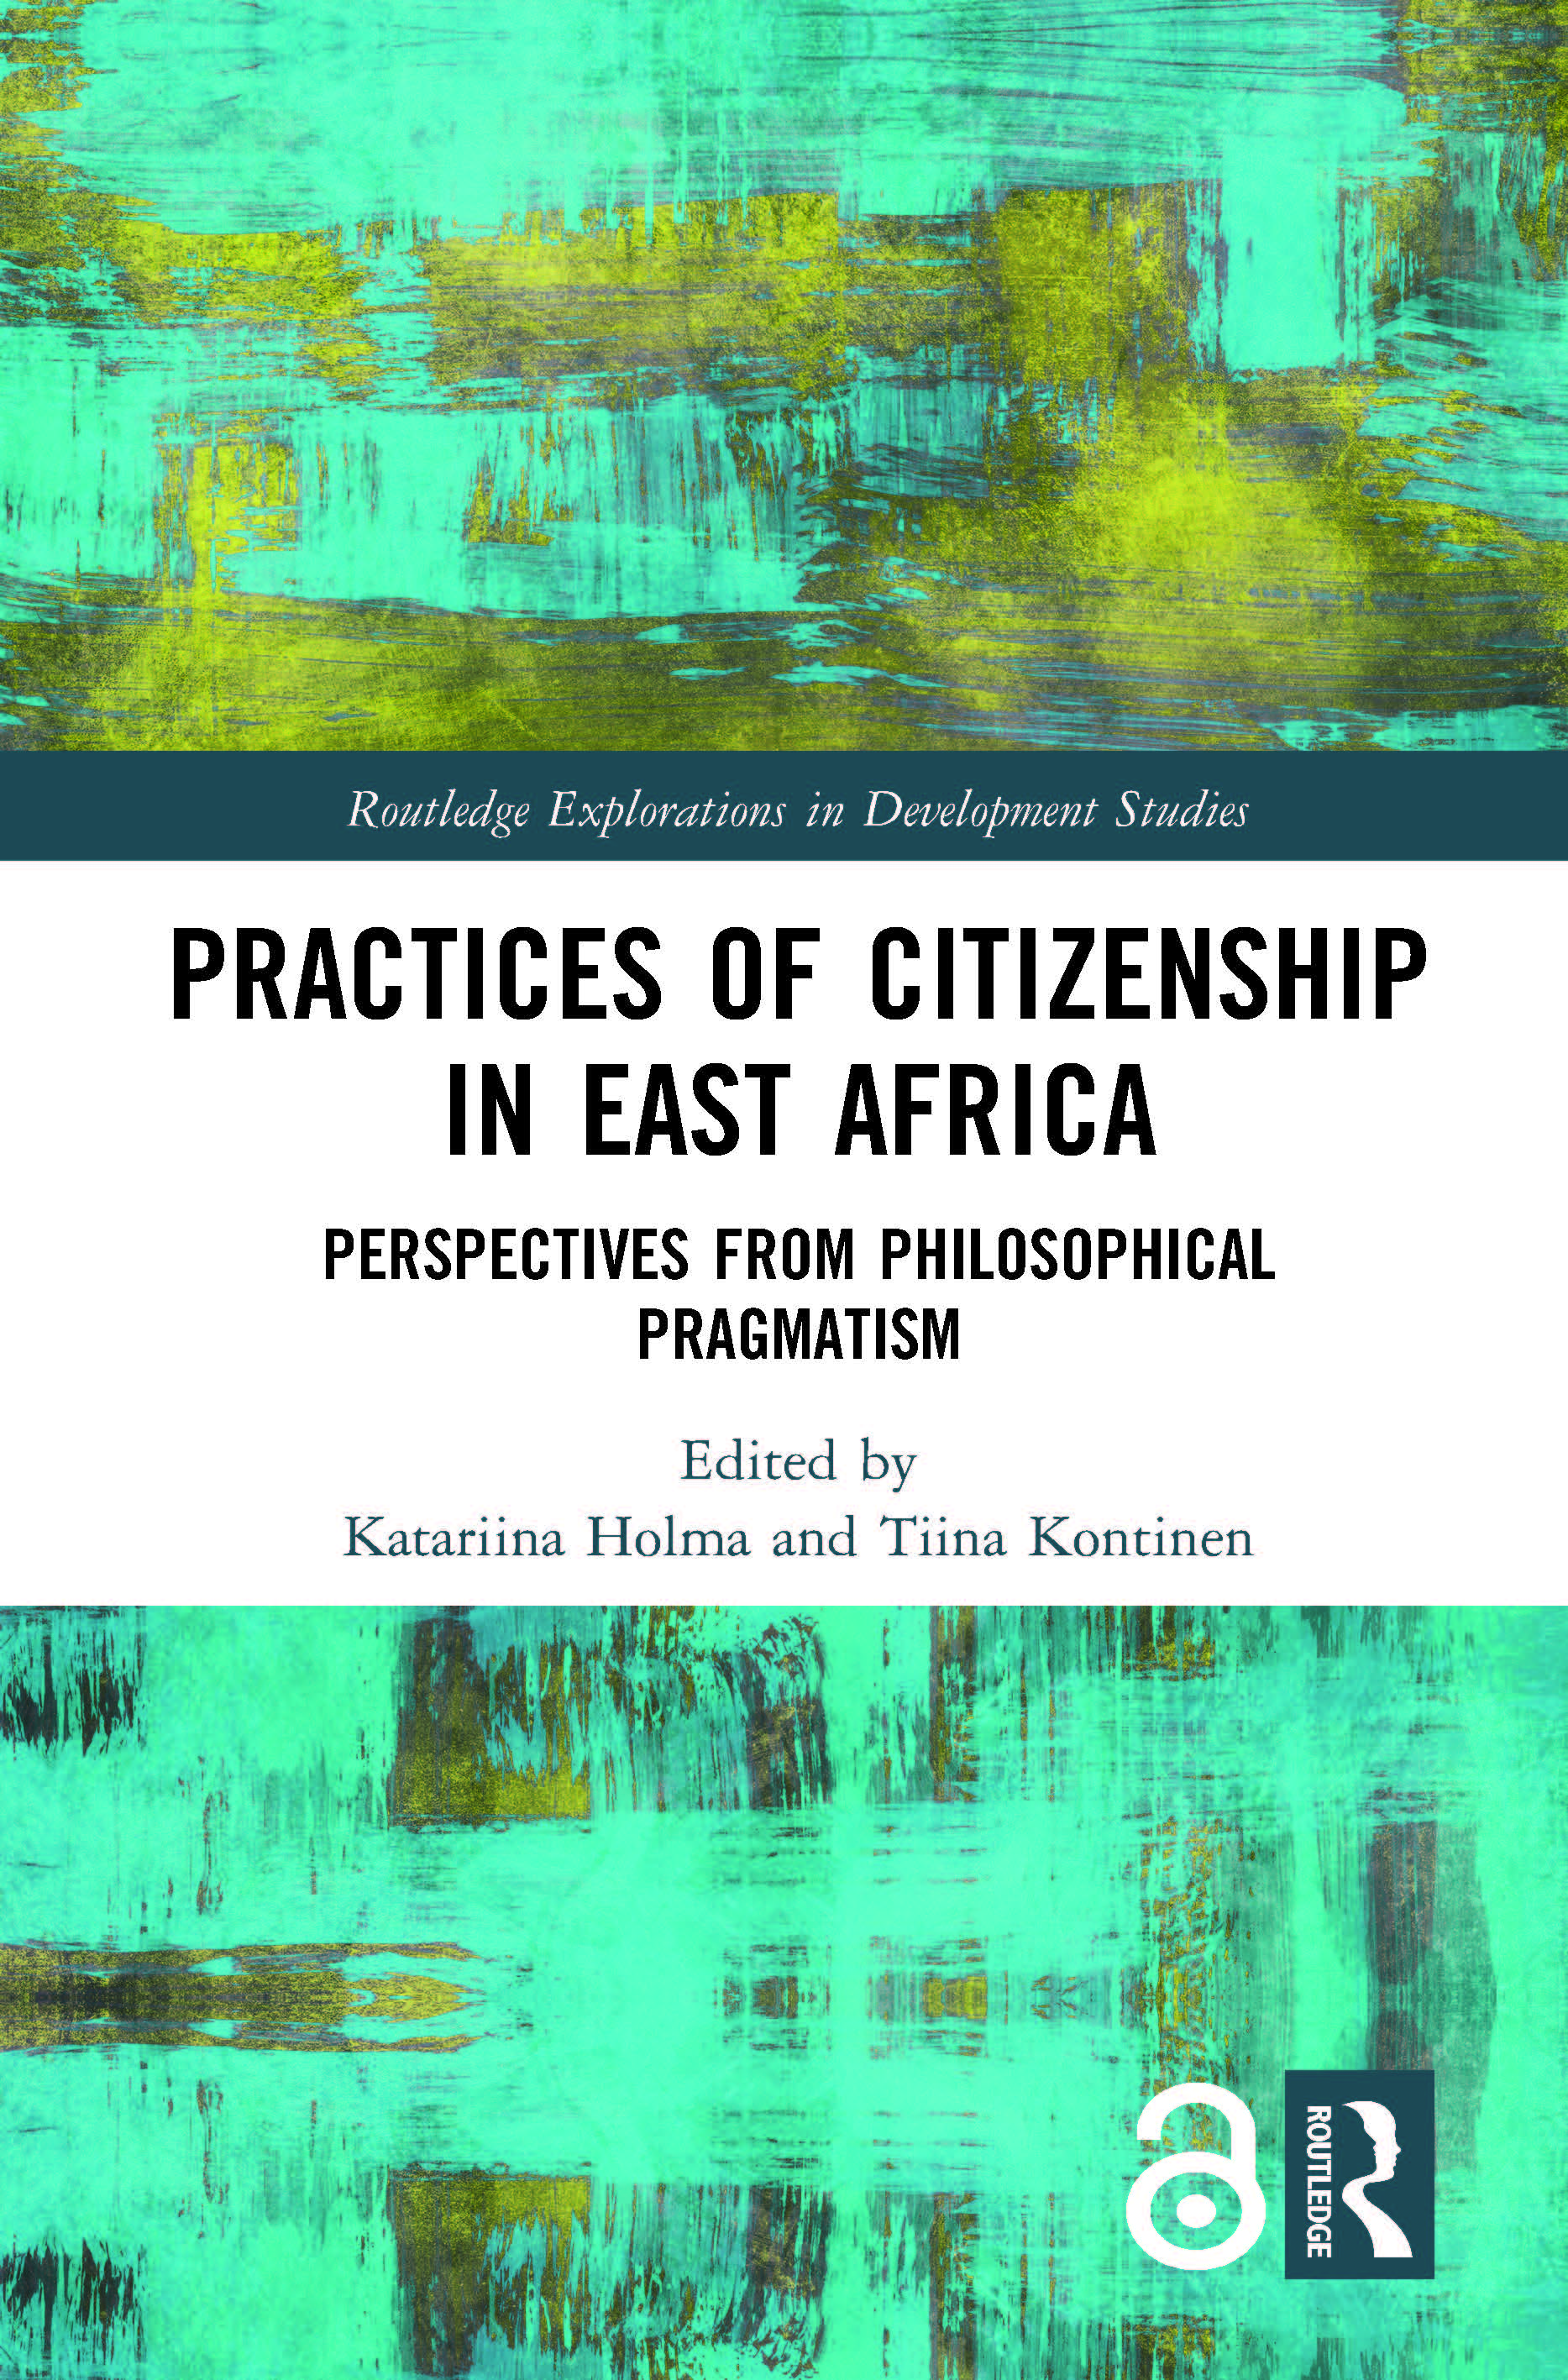 Practices of Citizenship in East Africa: Perspectives from Philosophical Pragmatism book cover